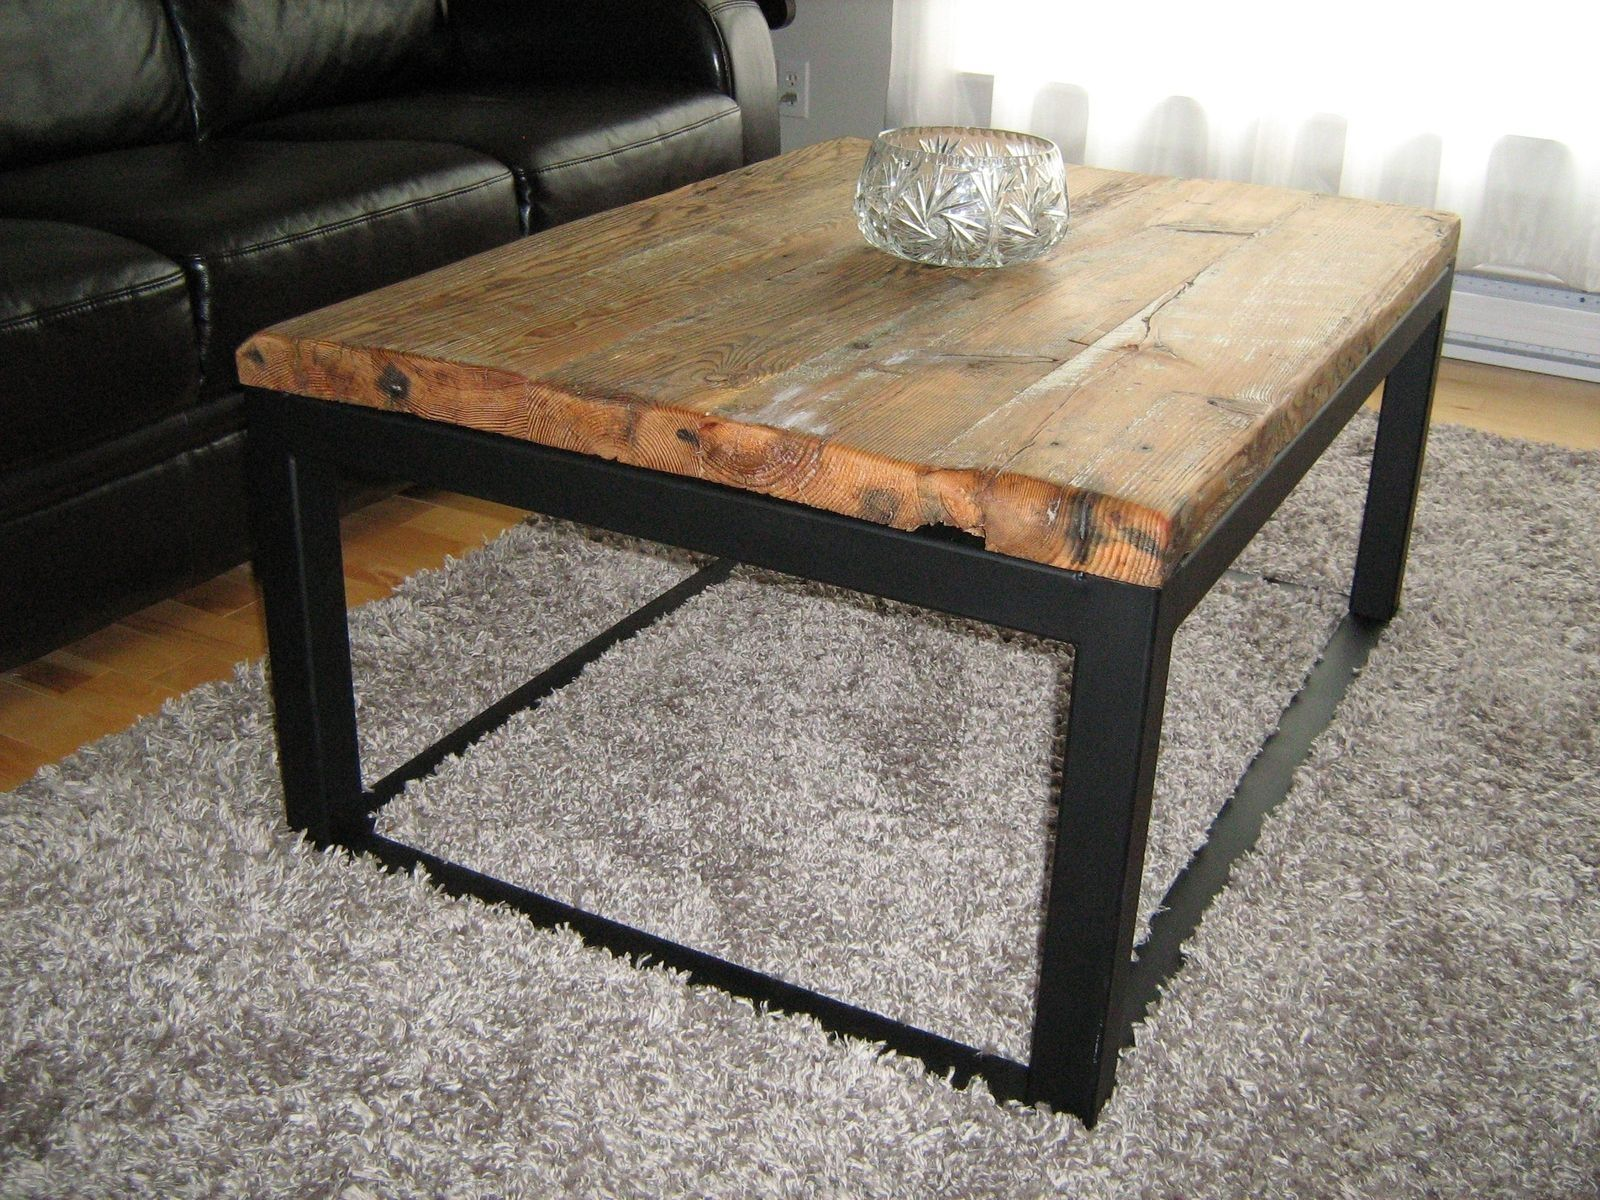 Table white table tops 36 round granite table top sesame white - Wood And Metal Coffee Table Sets